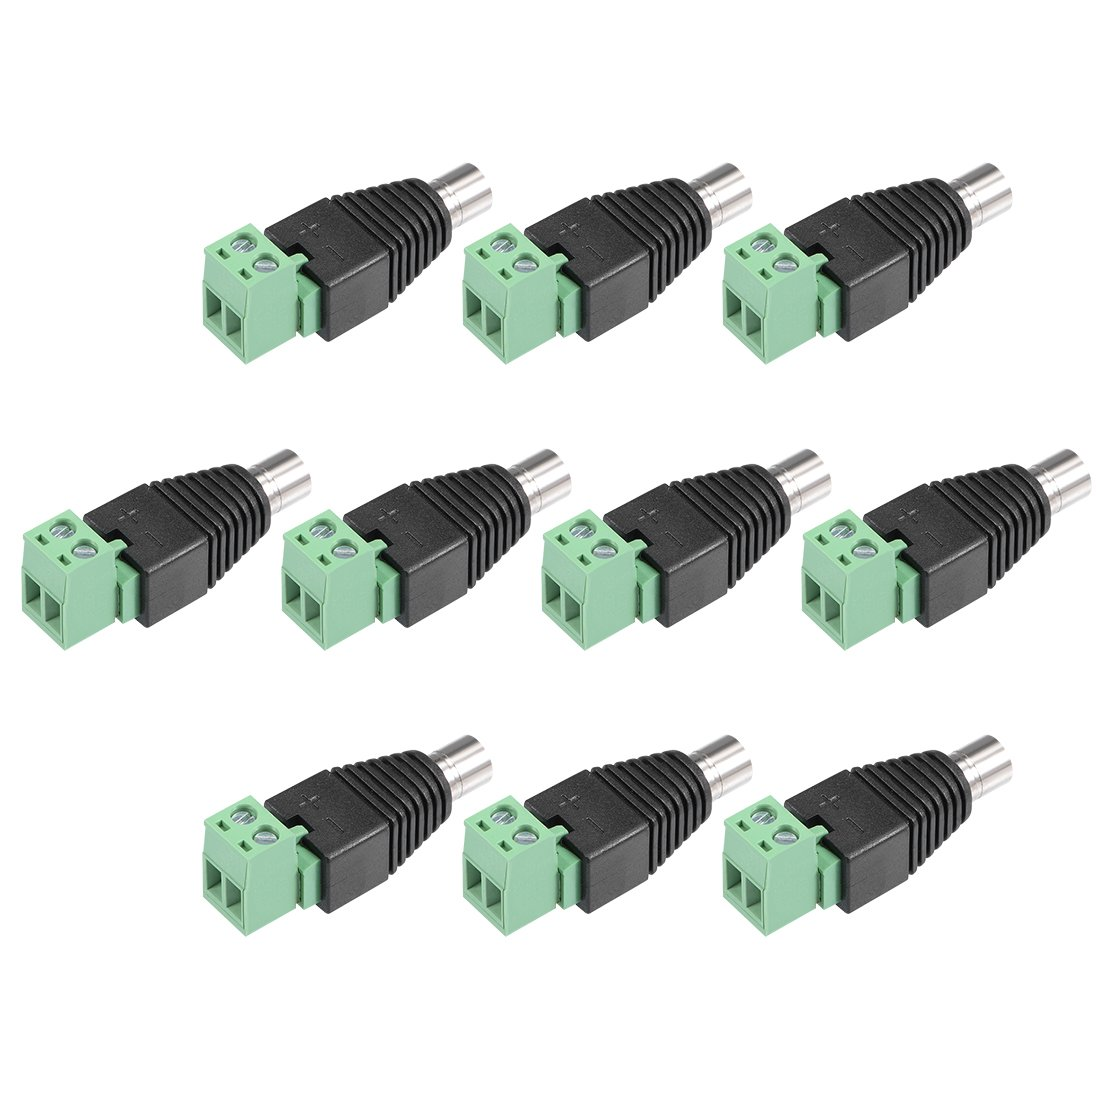 uxcell DC Female Connector 5.5x2.1mm Power Jack Removable Terminal Block Adapter 10Pcs for Led Strip CCTV Security Camera Cable Wire Ends by uxcell